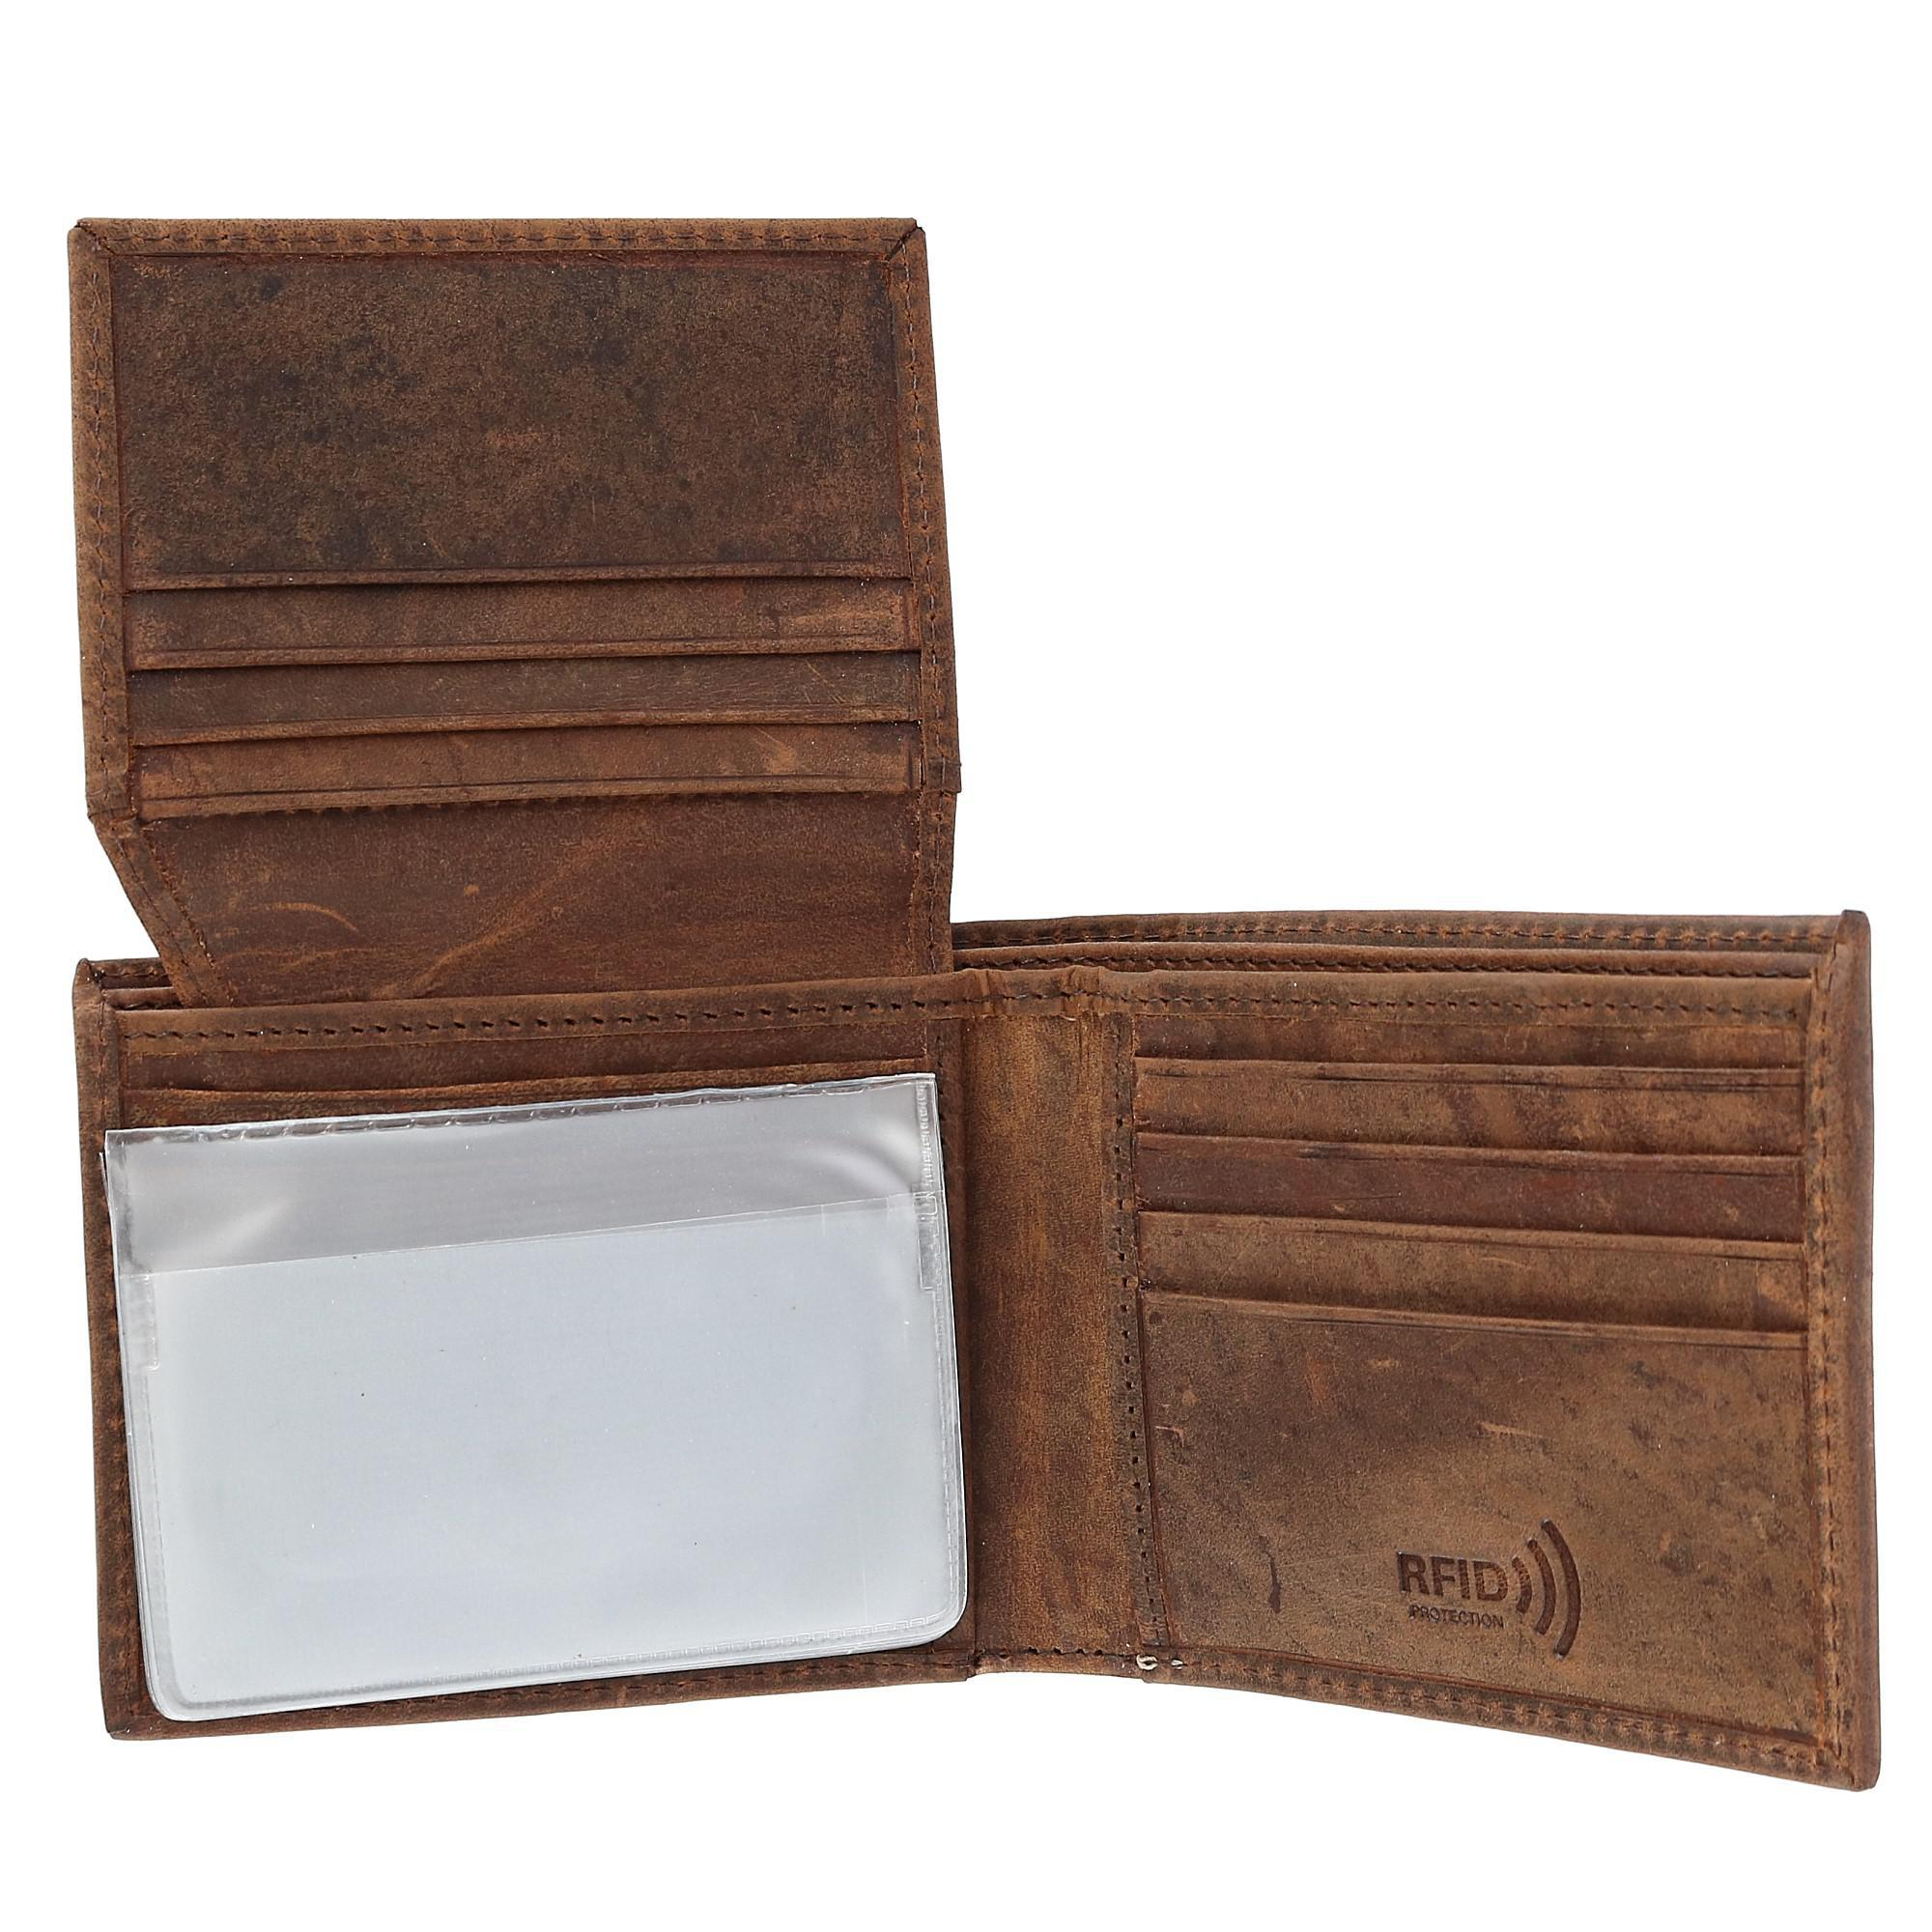 New CTM Men/'s Hunter Leather Distressed RFID Bifold Wallet with Interior Zipper